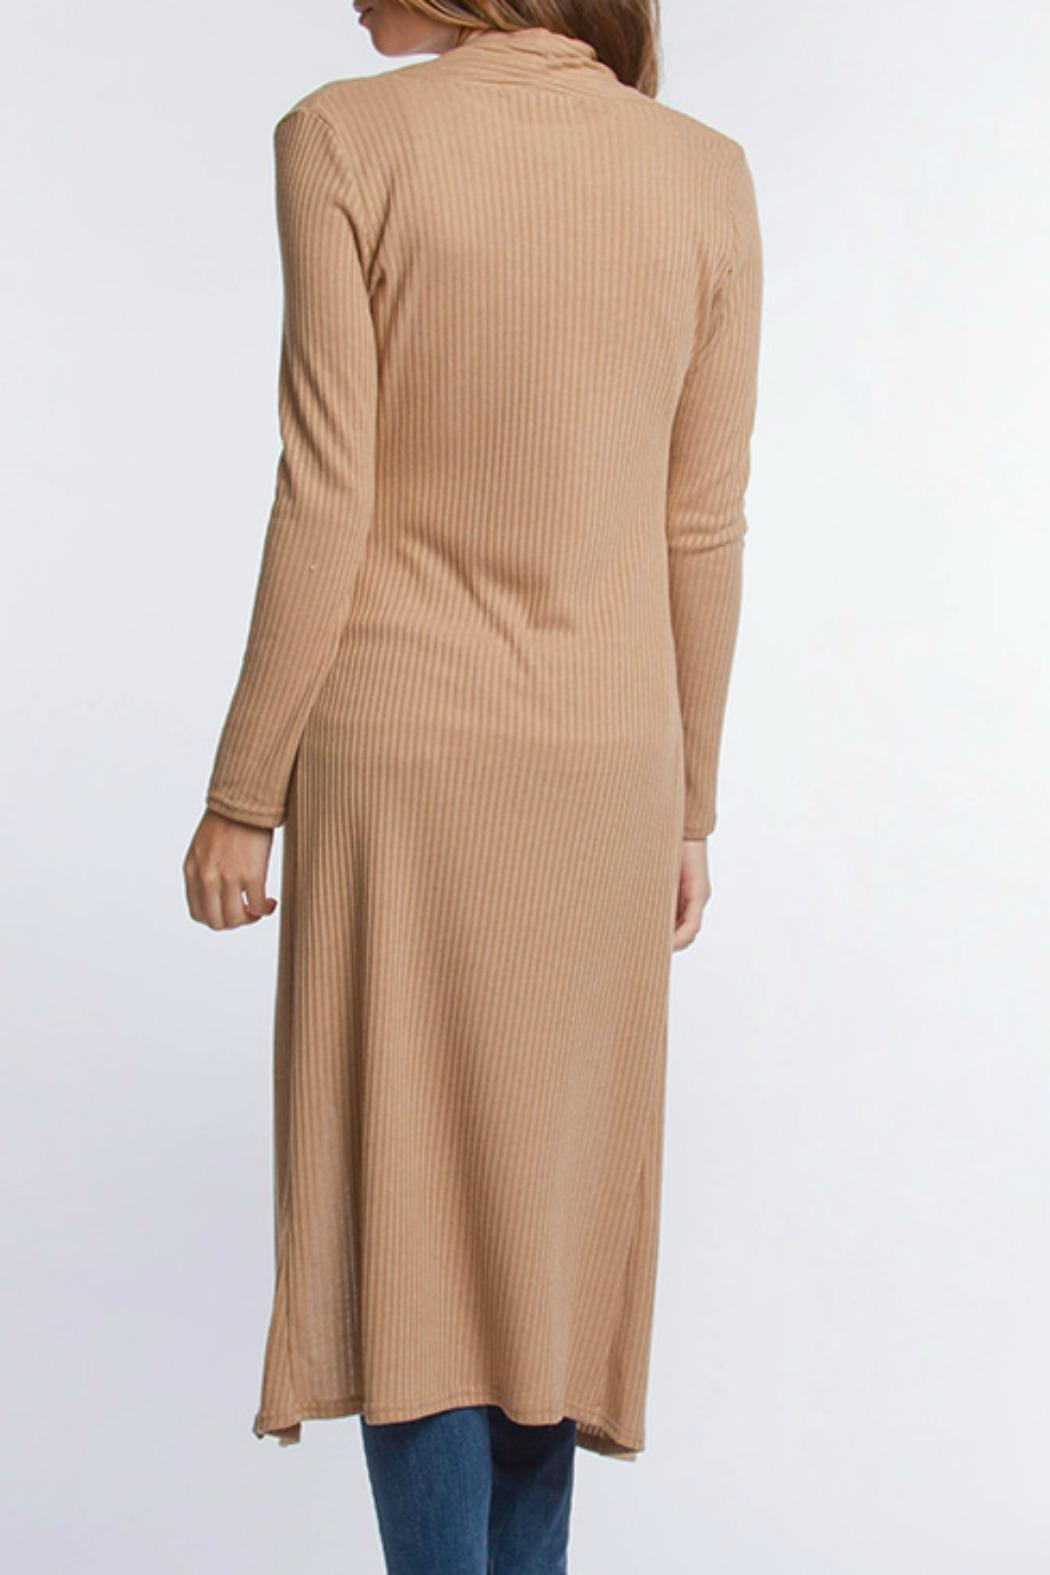 Ya Los Angeles Camel Maxi Cardigan from New Jersey by London Rose ...